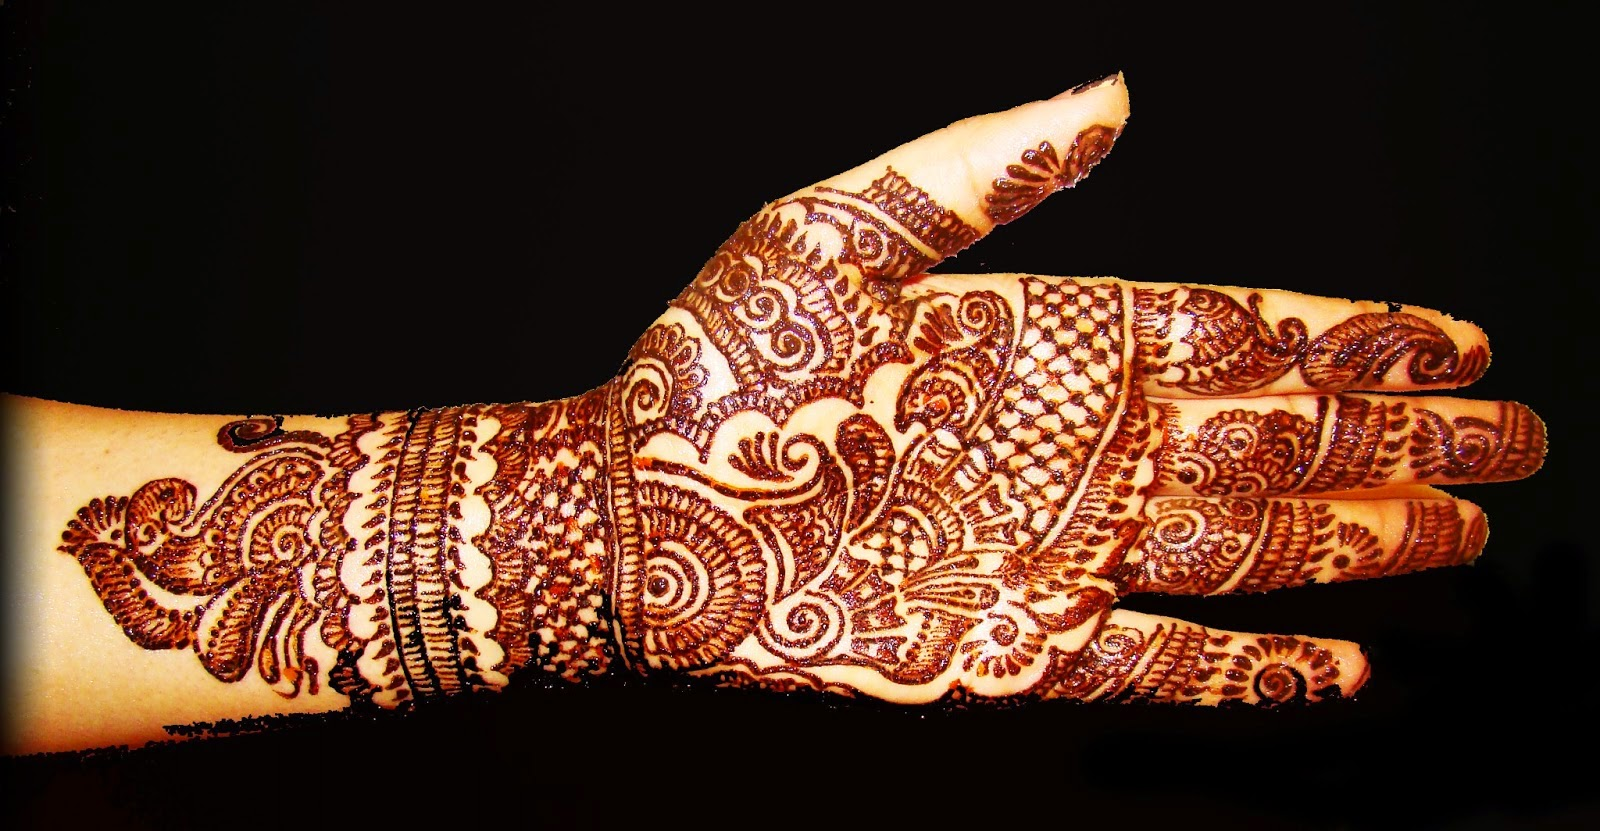 Designs Of Mehndi 2014 For Eid On Foot Simple Dresses On Hands On